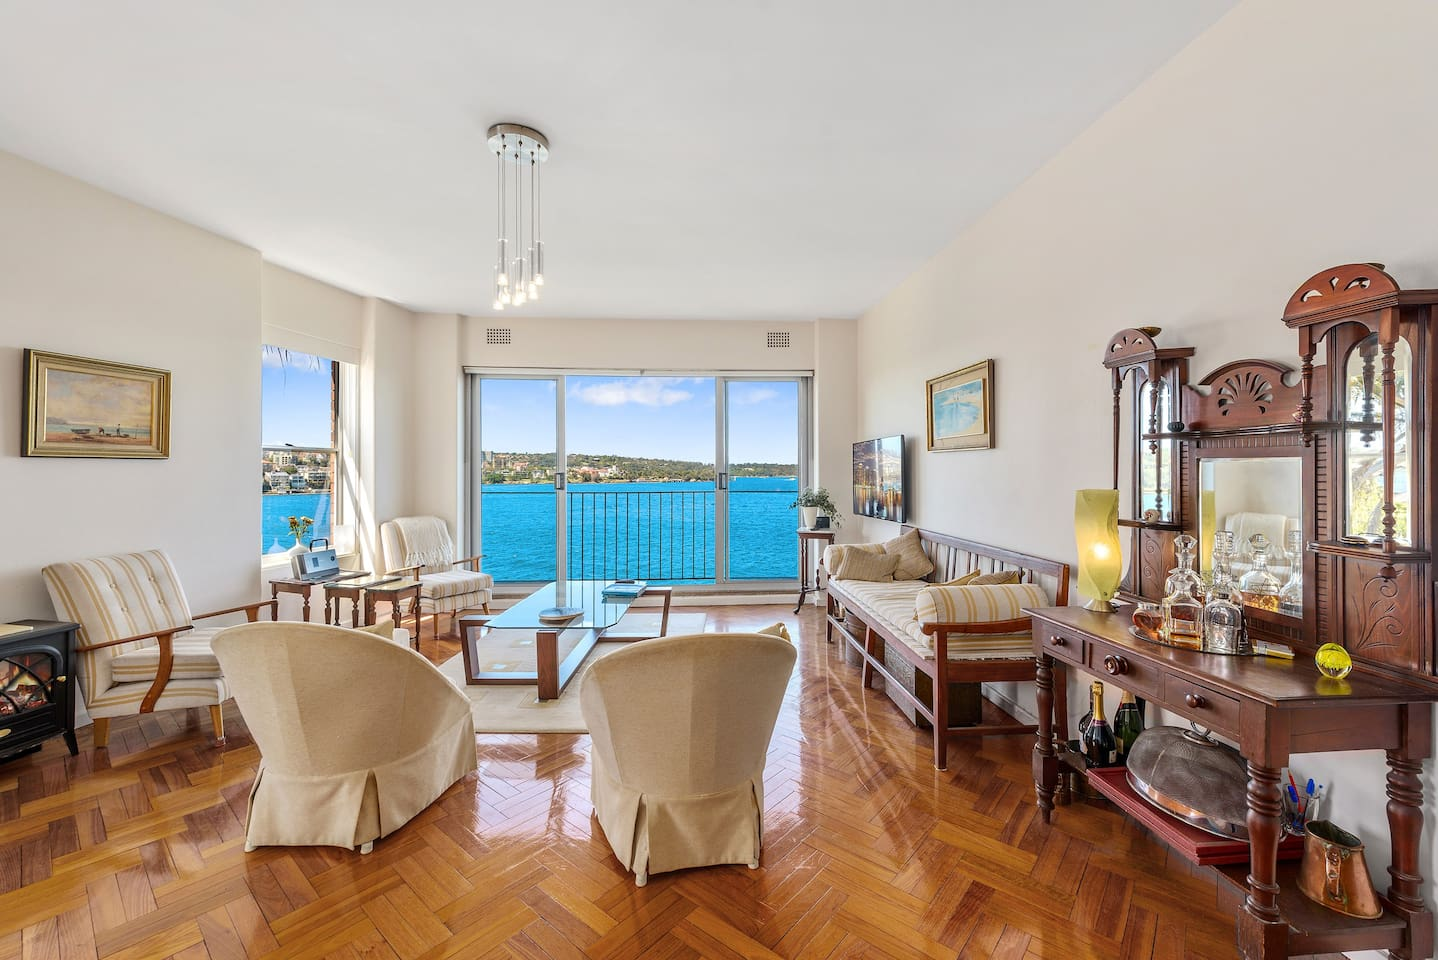 Enjoy the same breathtaking views as the Prime Minister, with a luxuriously appointed apartment indulge in the tranquility of the Sydney Harbour and  the spectacular scenery it has to offer!